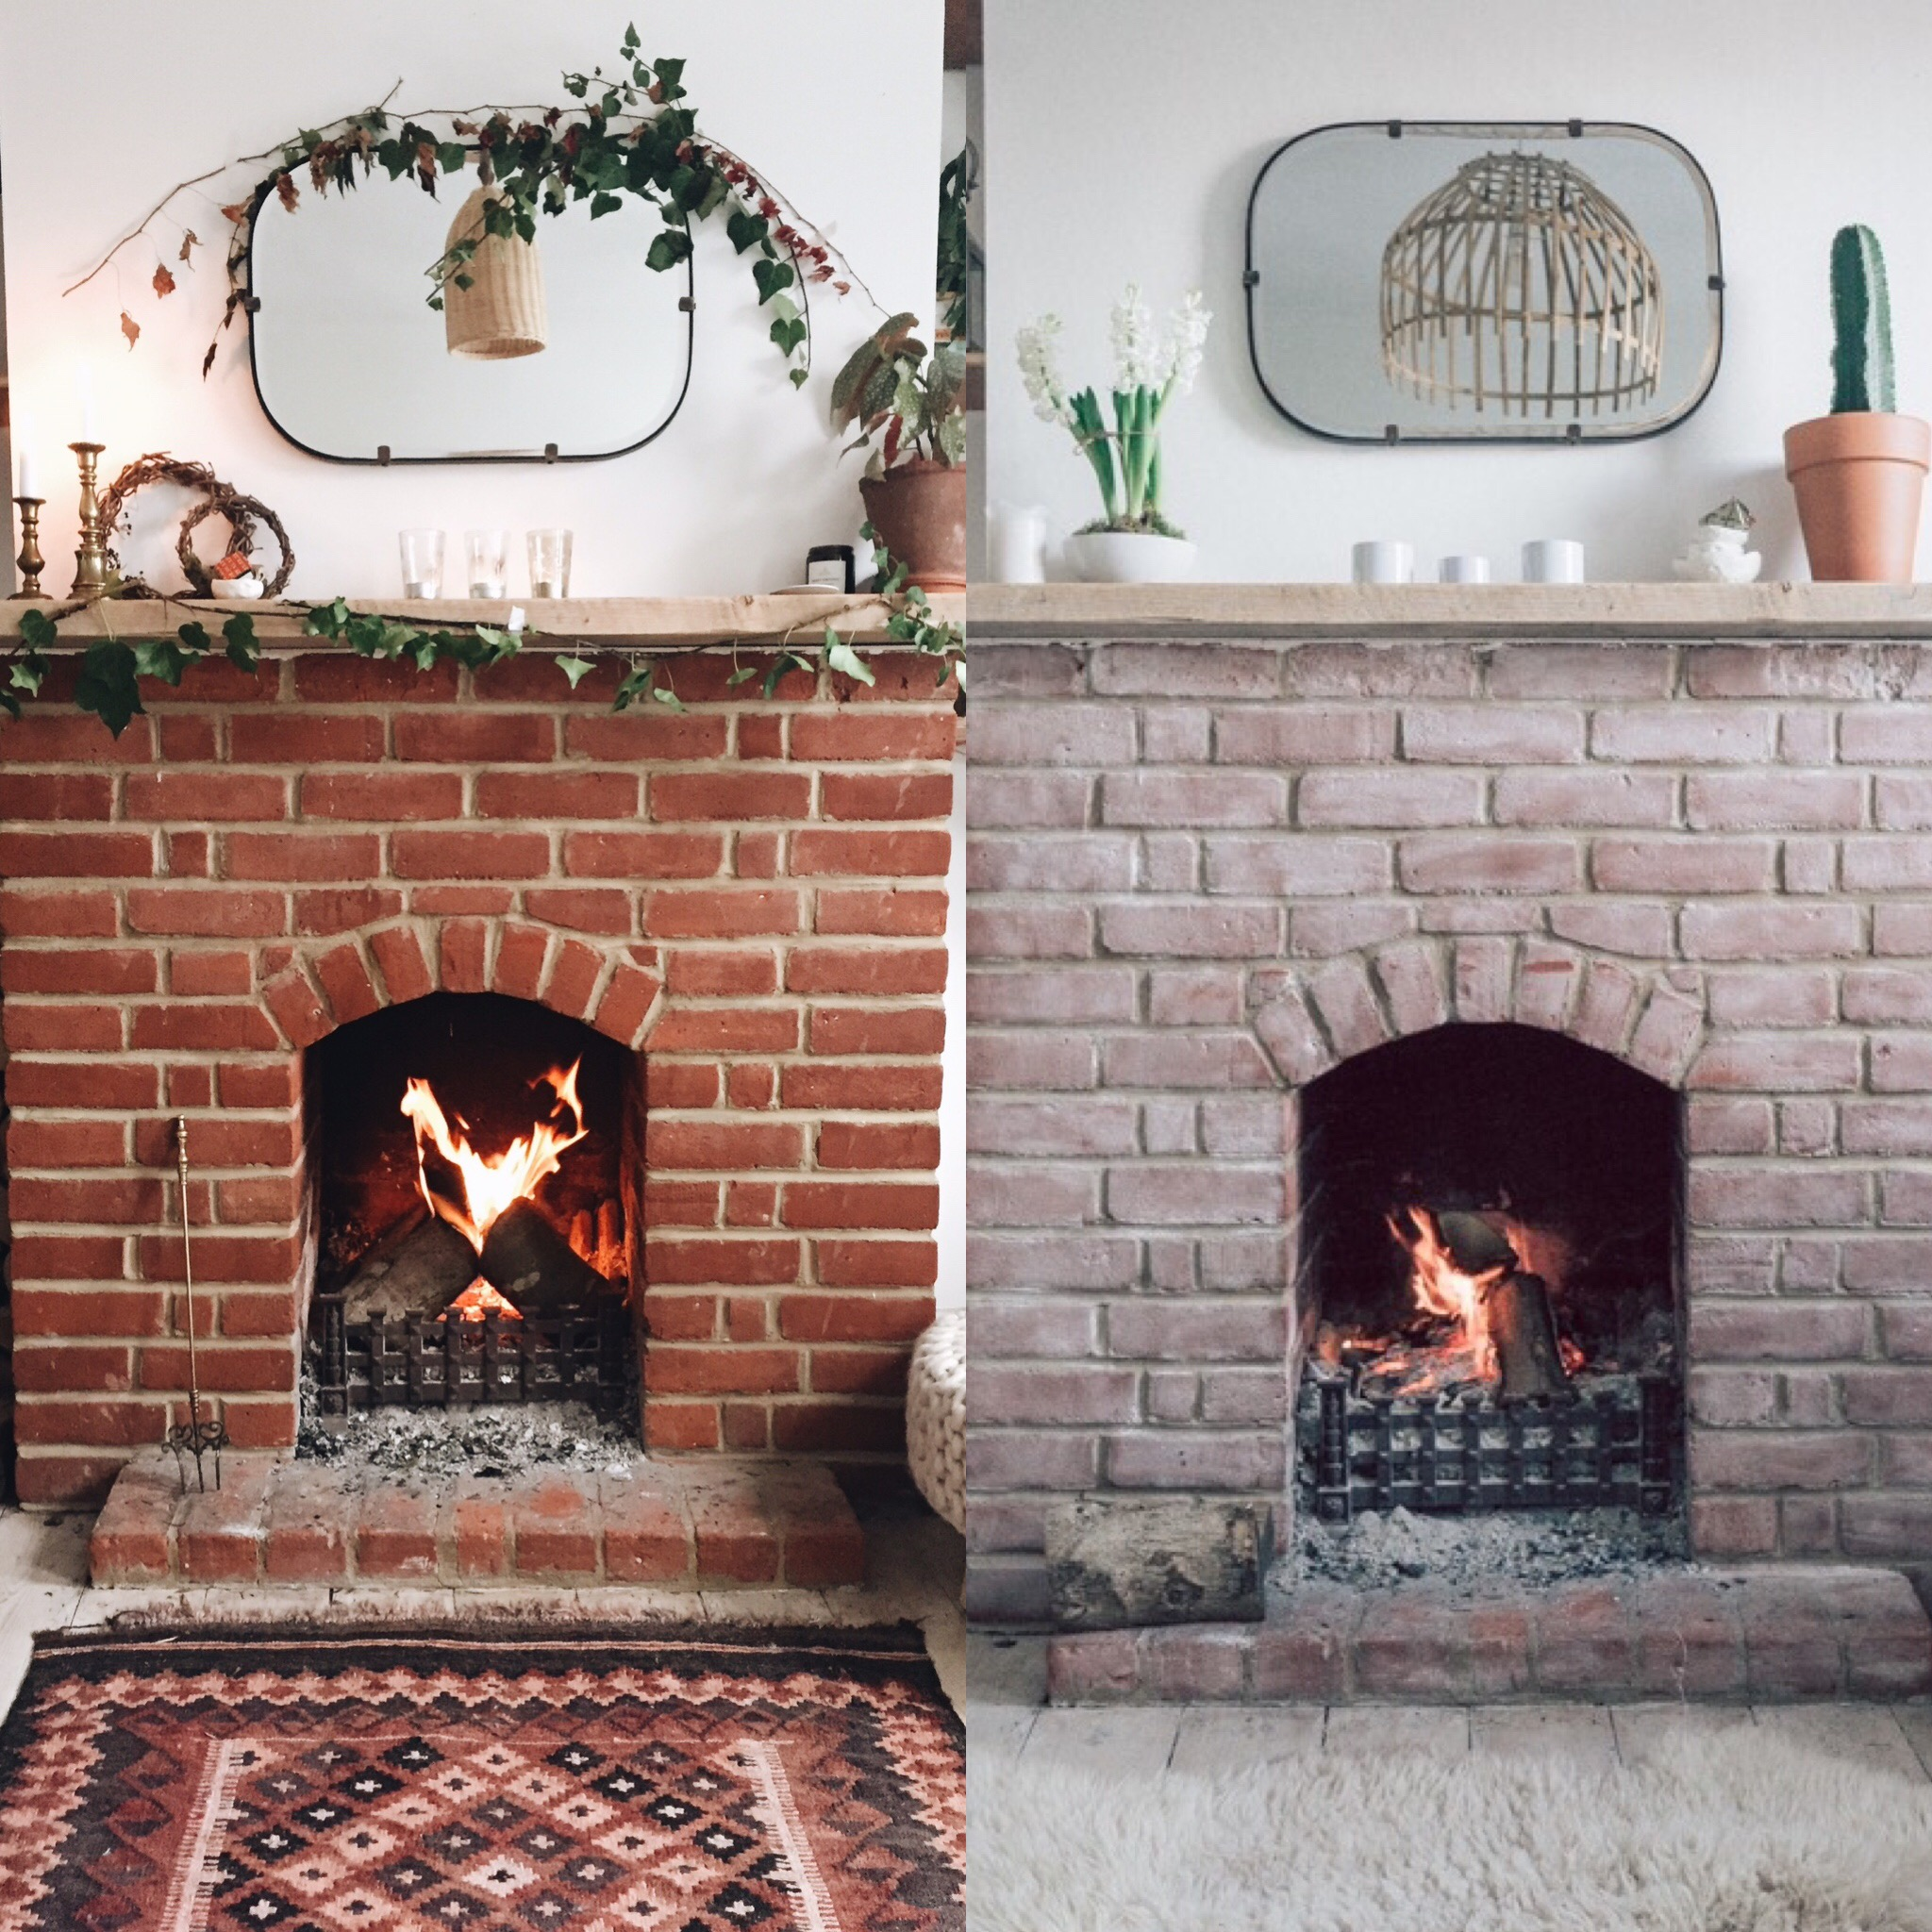 Fireplace makeover  with chalk! | Seeds and Stitches blog